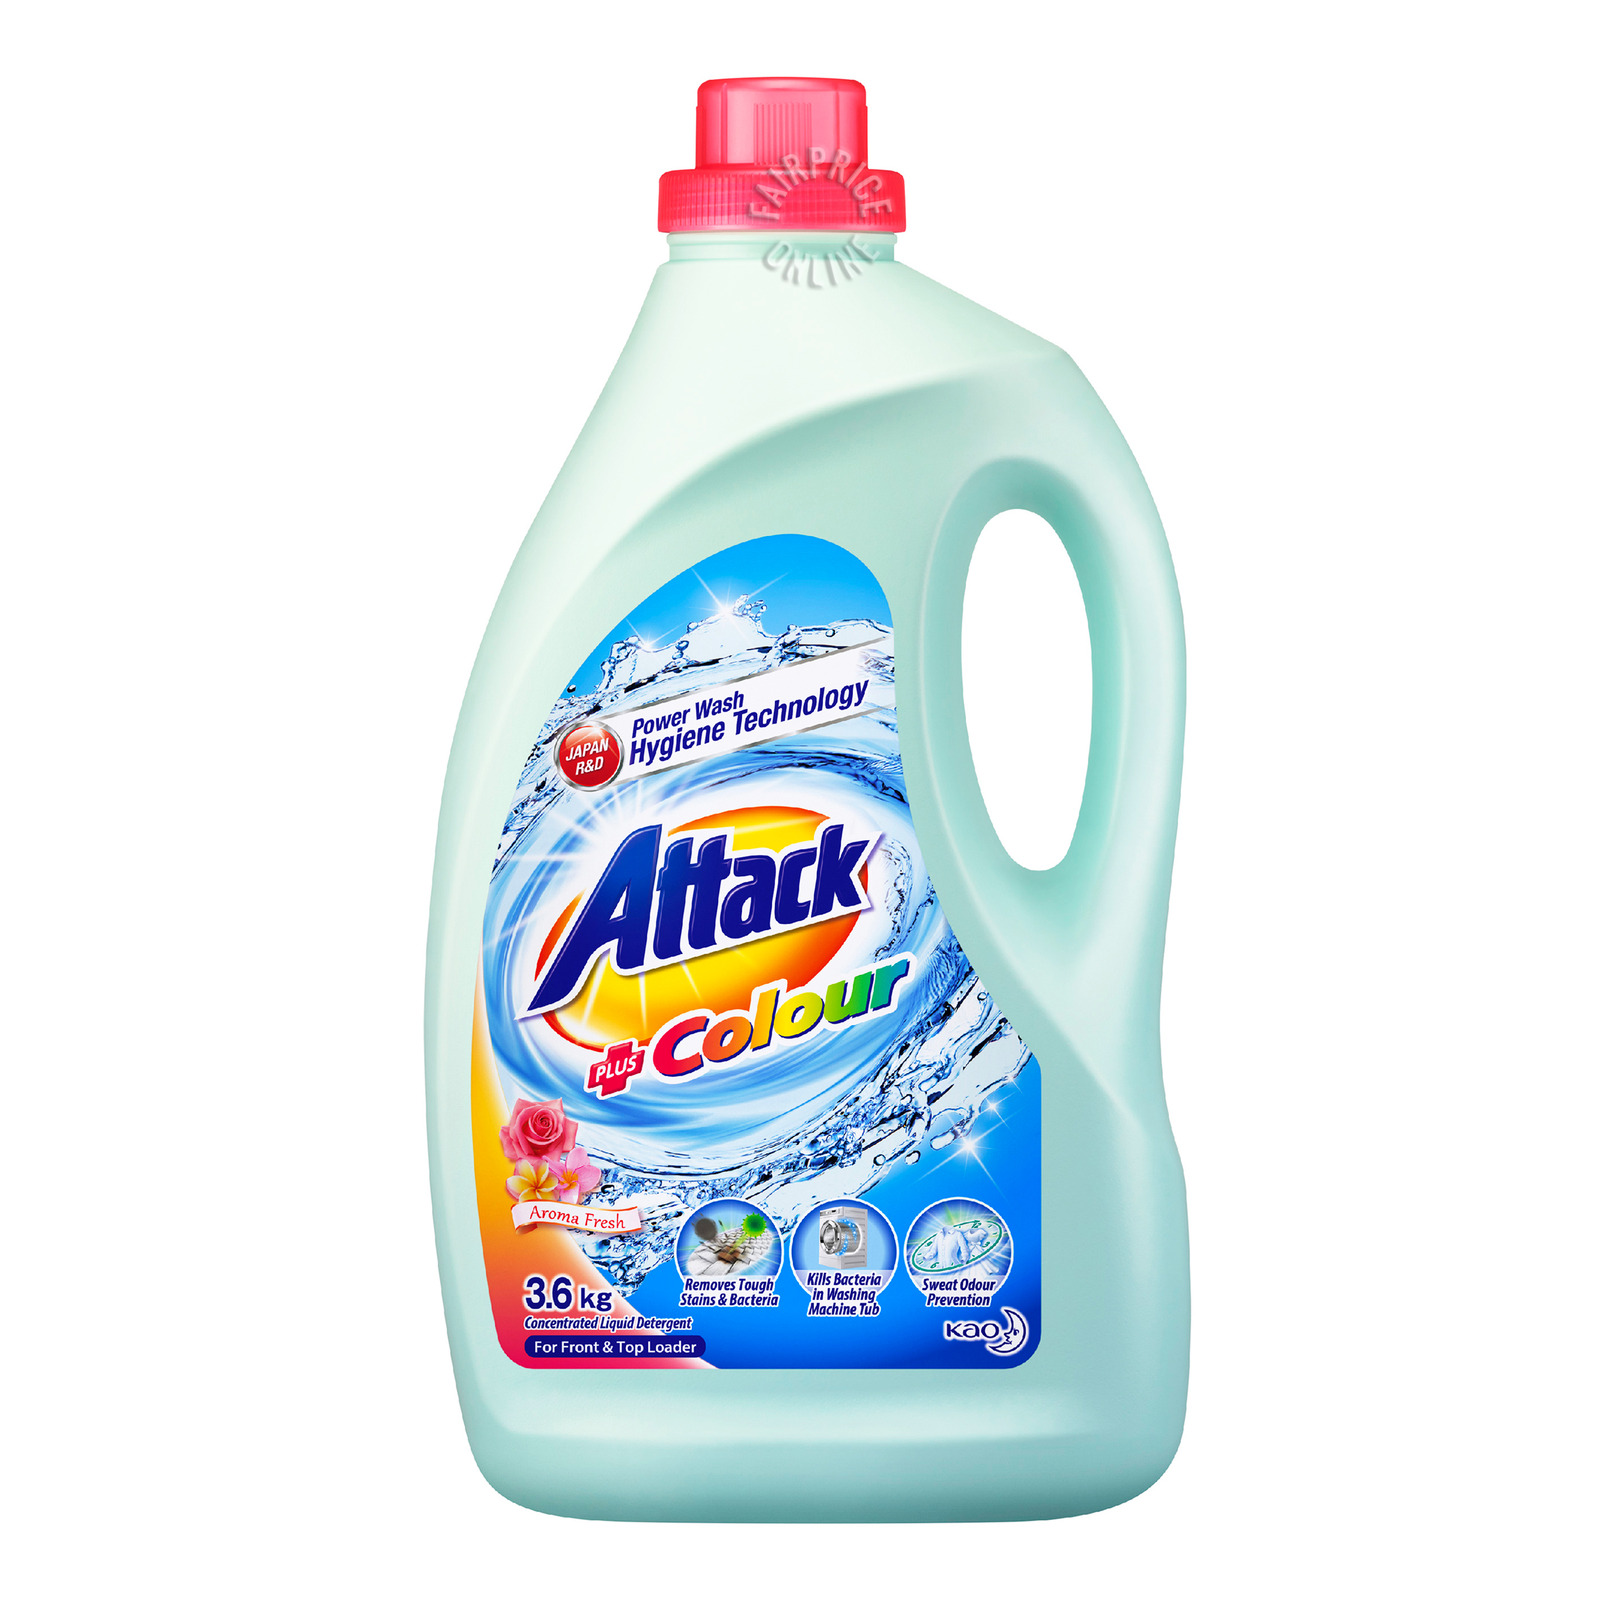 ATTACK Laundry Liquid - Sweet Floral + Softener 3.6kg